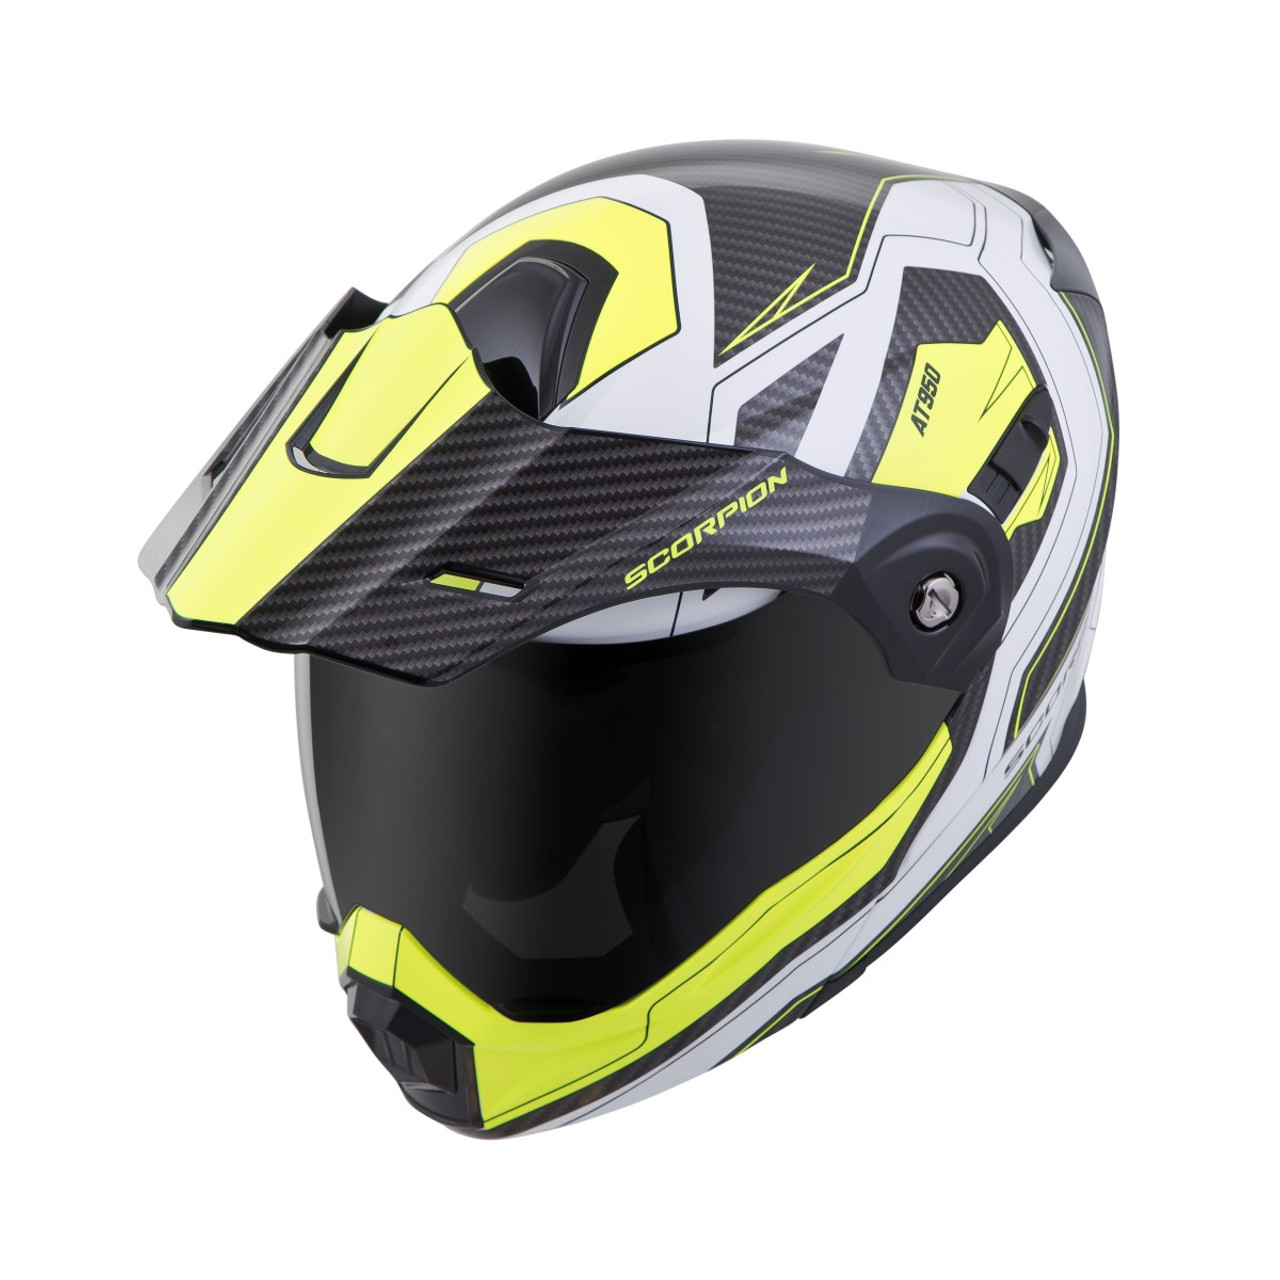 2b028d78 SCORPION EXO-AT950 Hi-Viz Yellow TUCSON HELMET ALL SIZES 95-0605